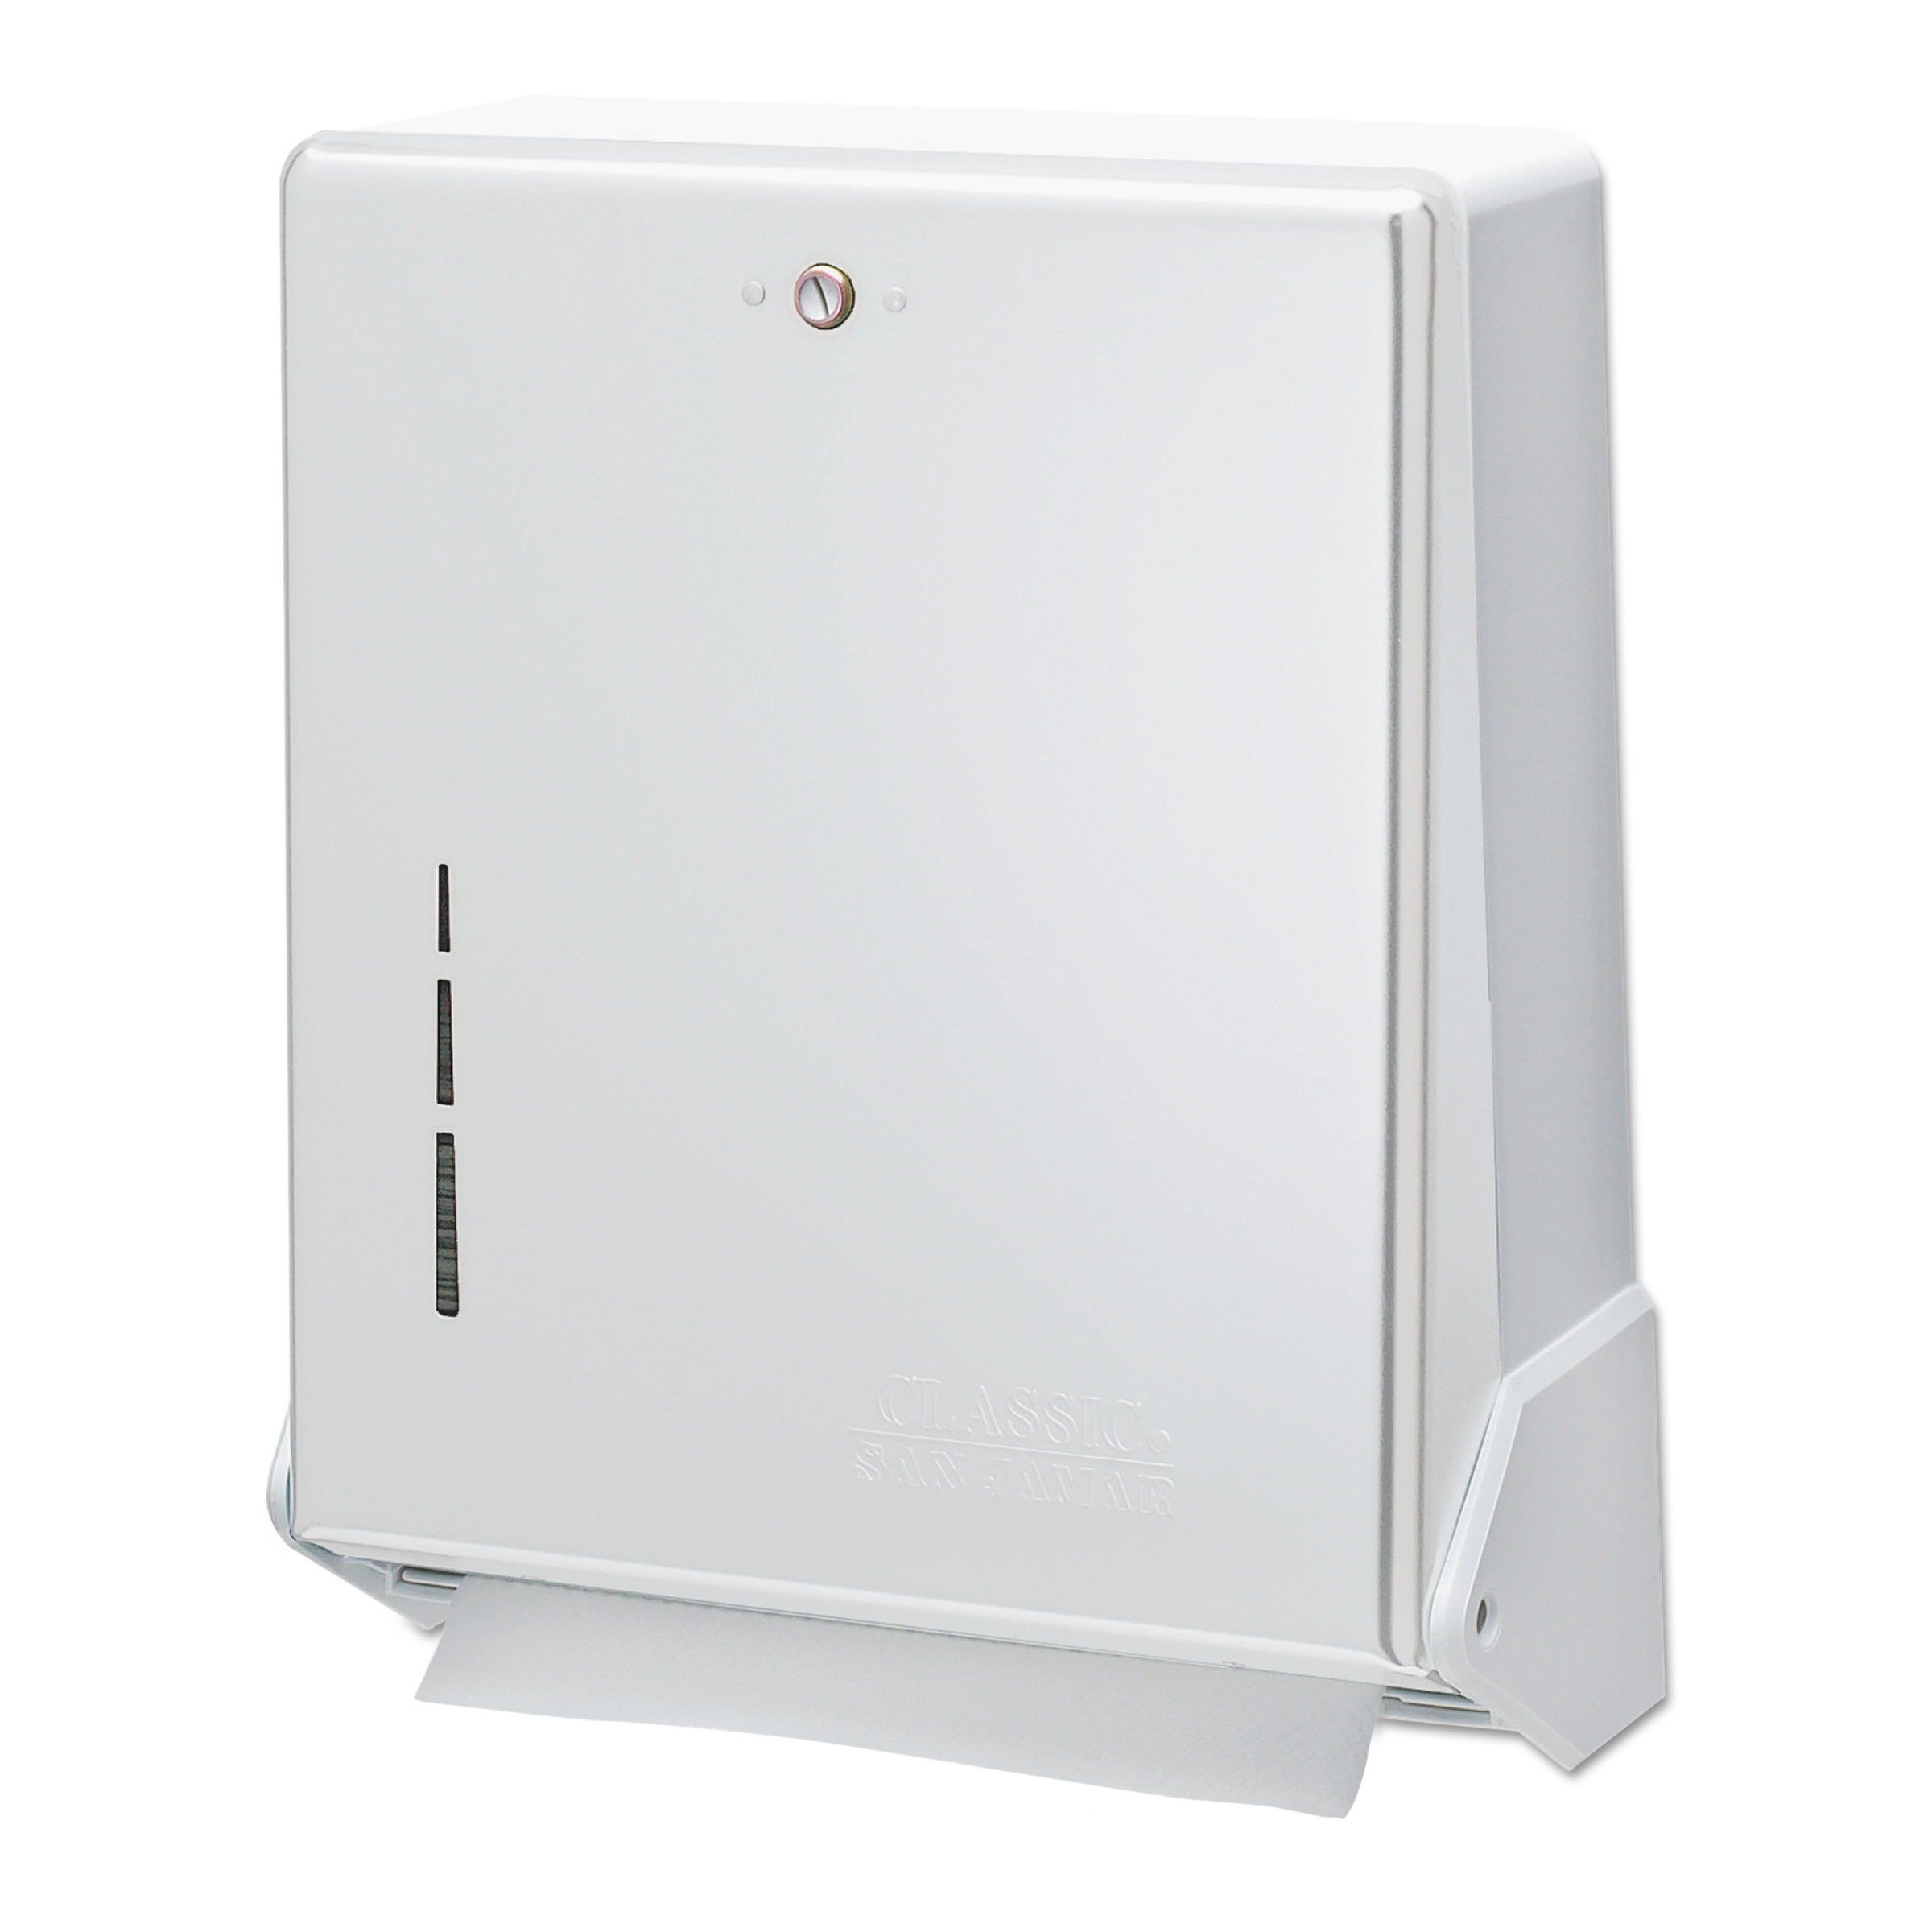 san jamar true fold paper towel dispenser white 11 - Paper Towel Dispenser